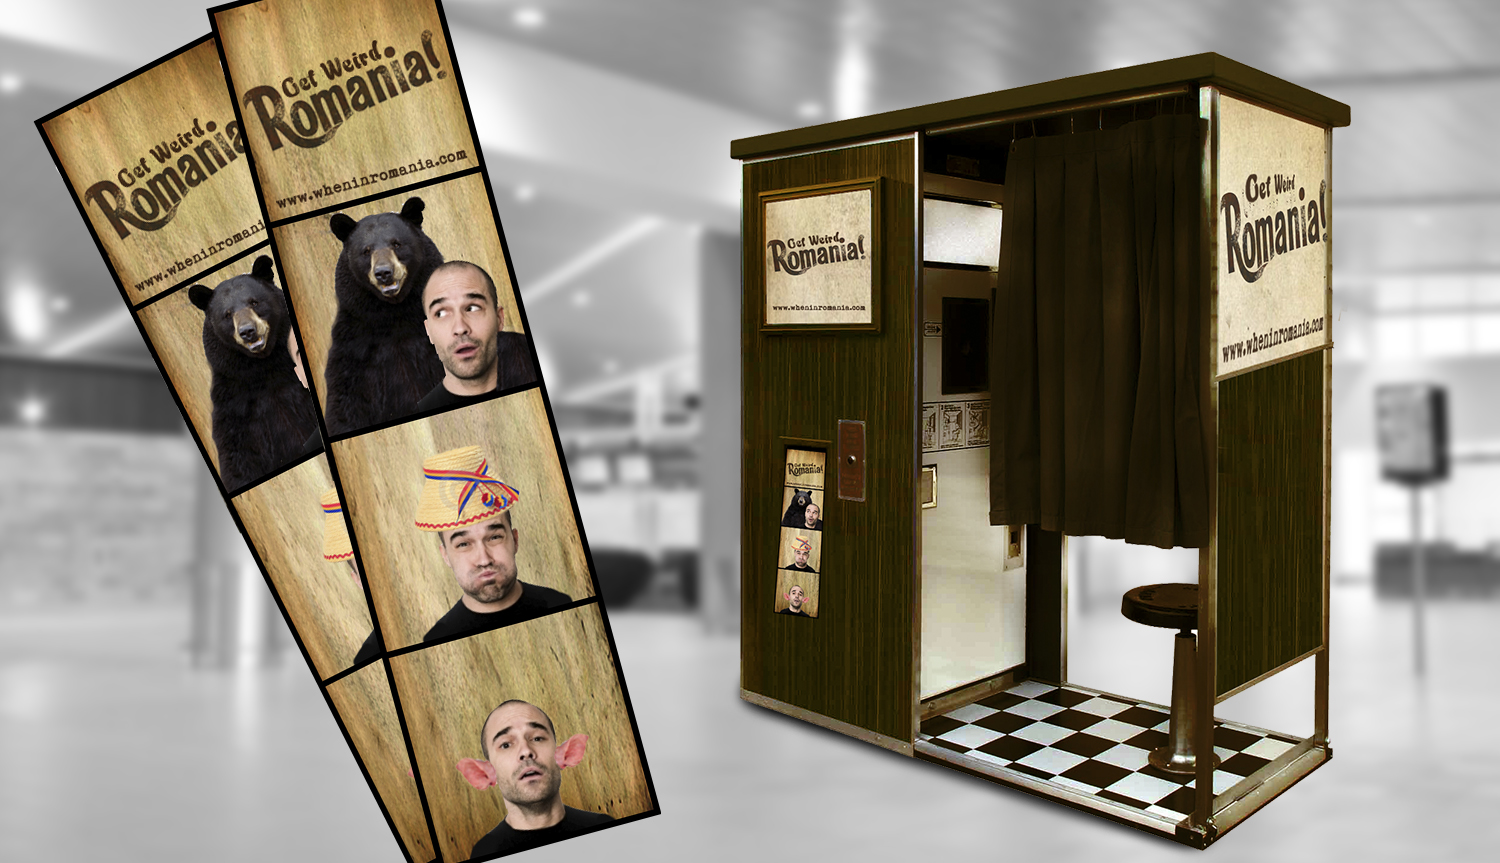 Ambient: Photo booth at airports. The background changes with each picture, depicting something exciting that you can experience in Romania